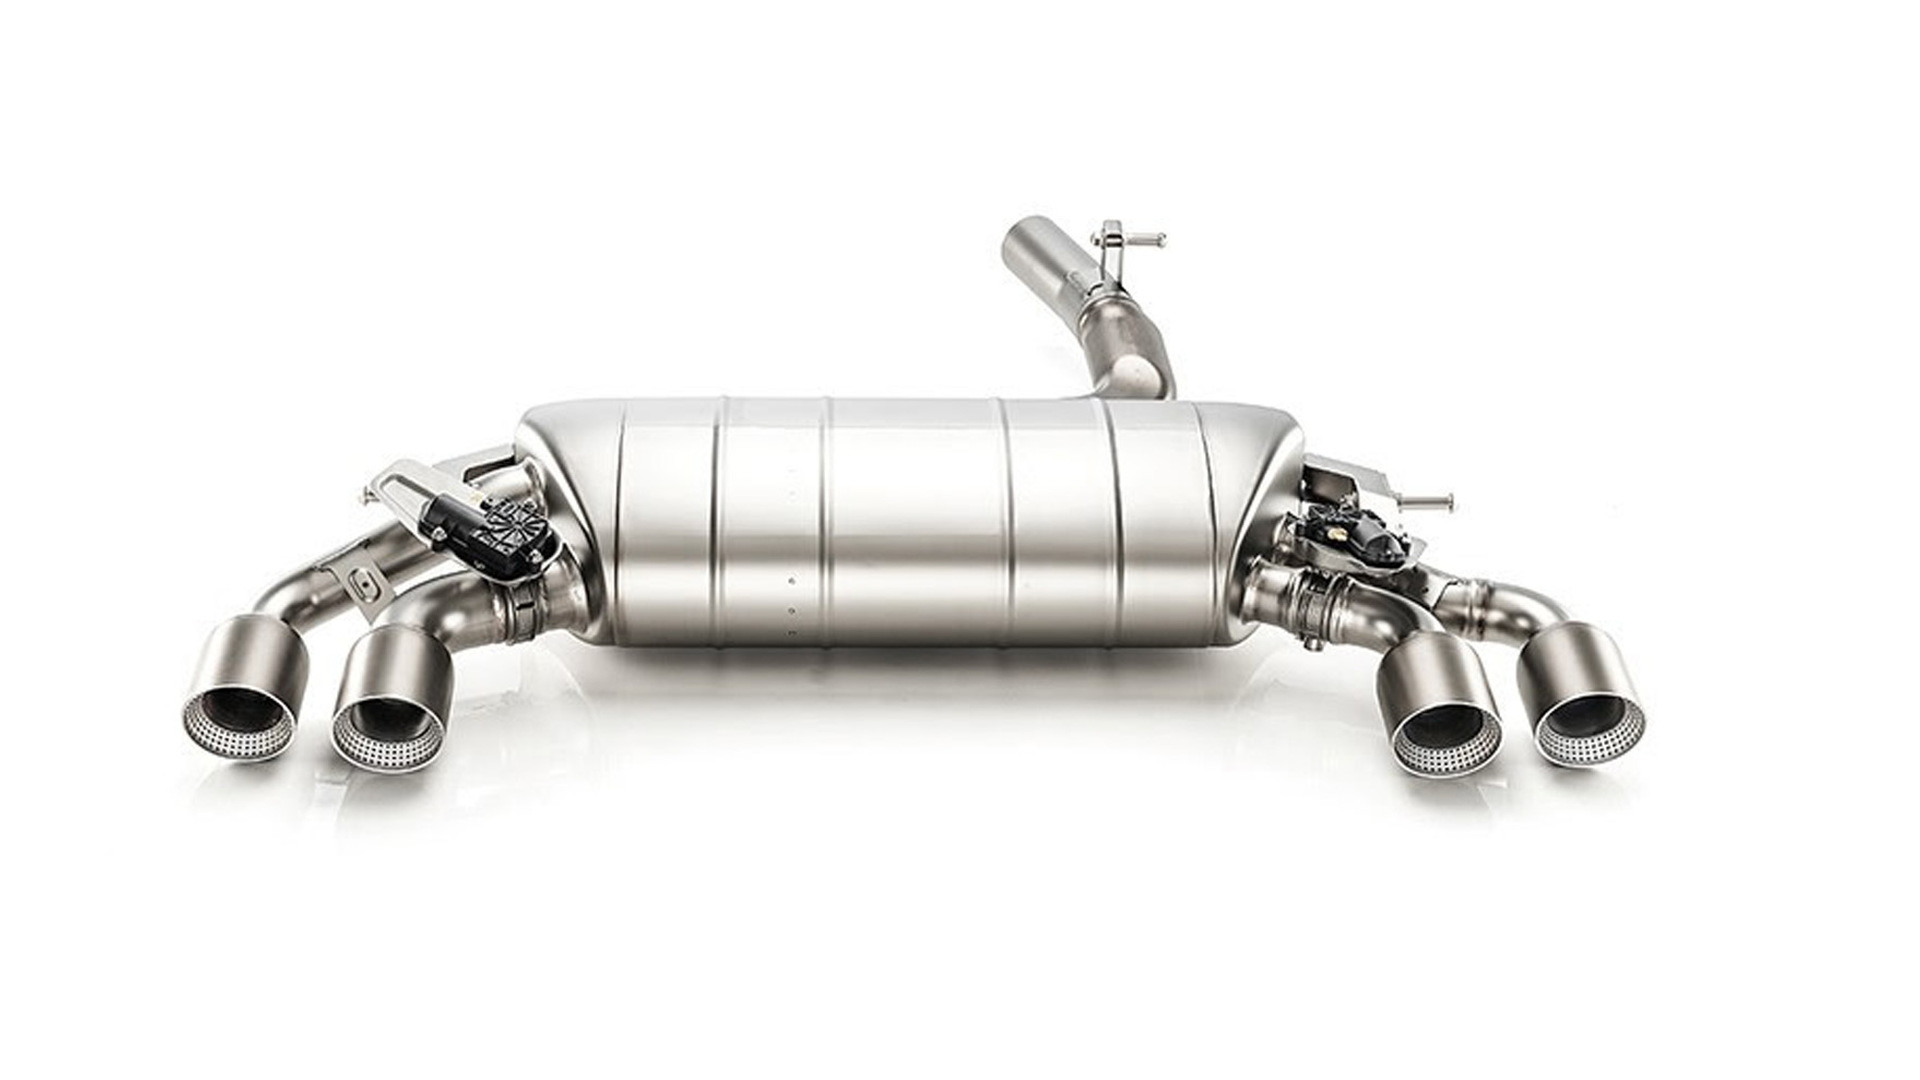 Akrapovič titanium exhaust for MkVII Volkswagen Golf R